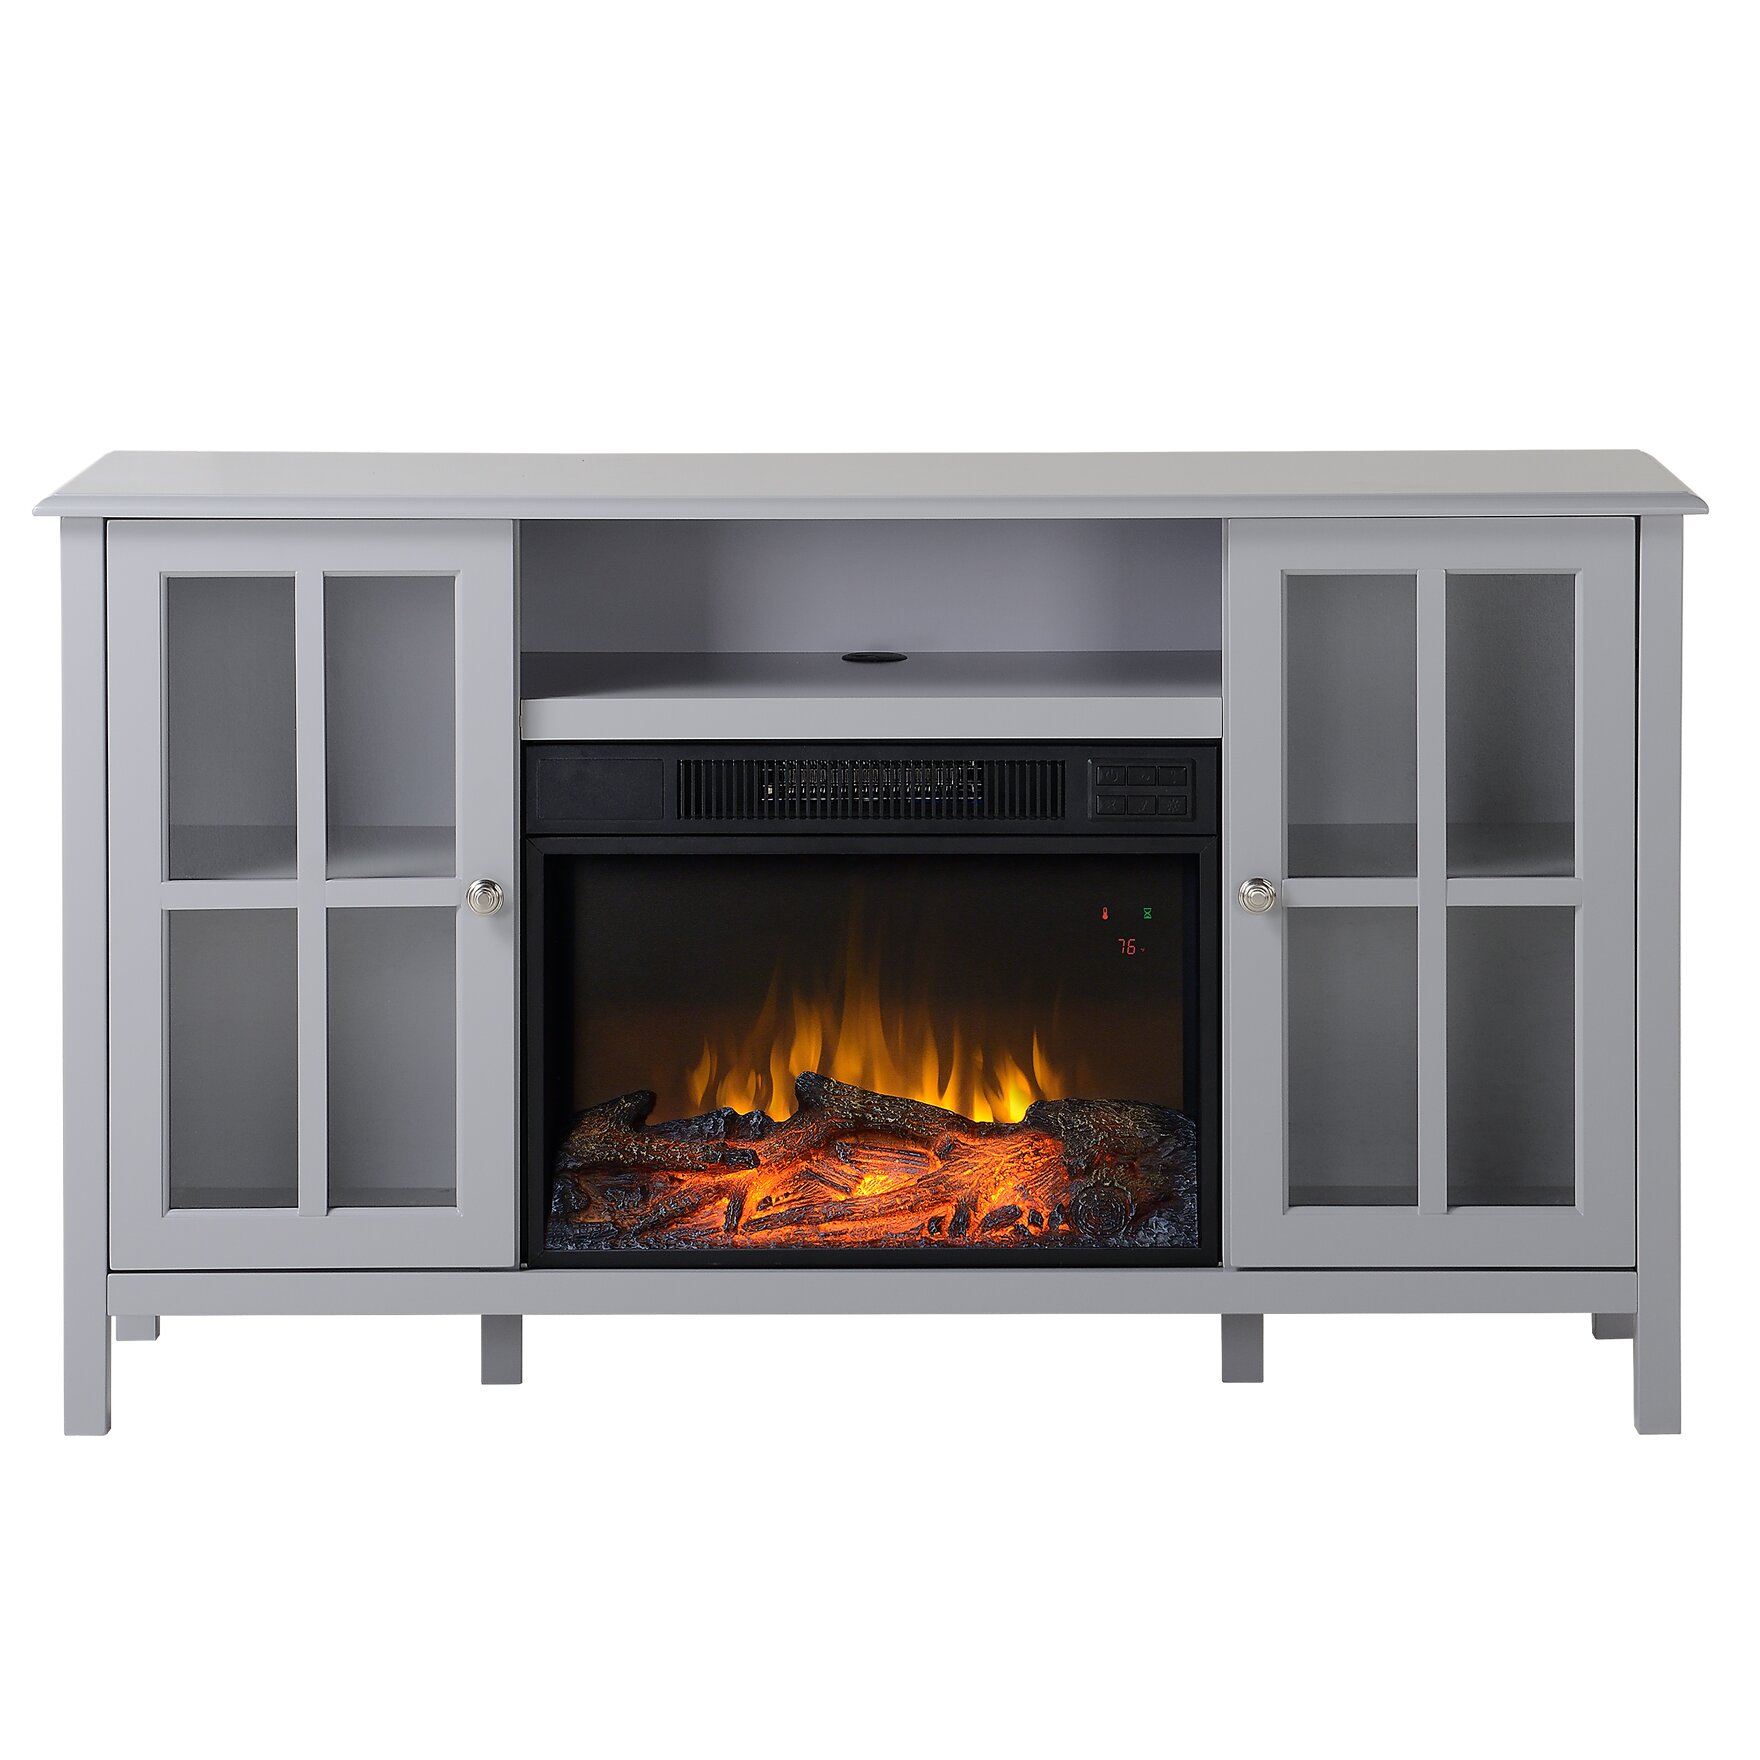 Homestar Langley 55 5 Tv Stand With Electric Fireplace Reviews